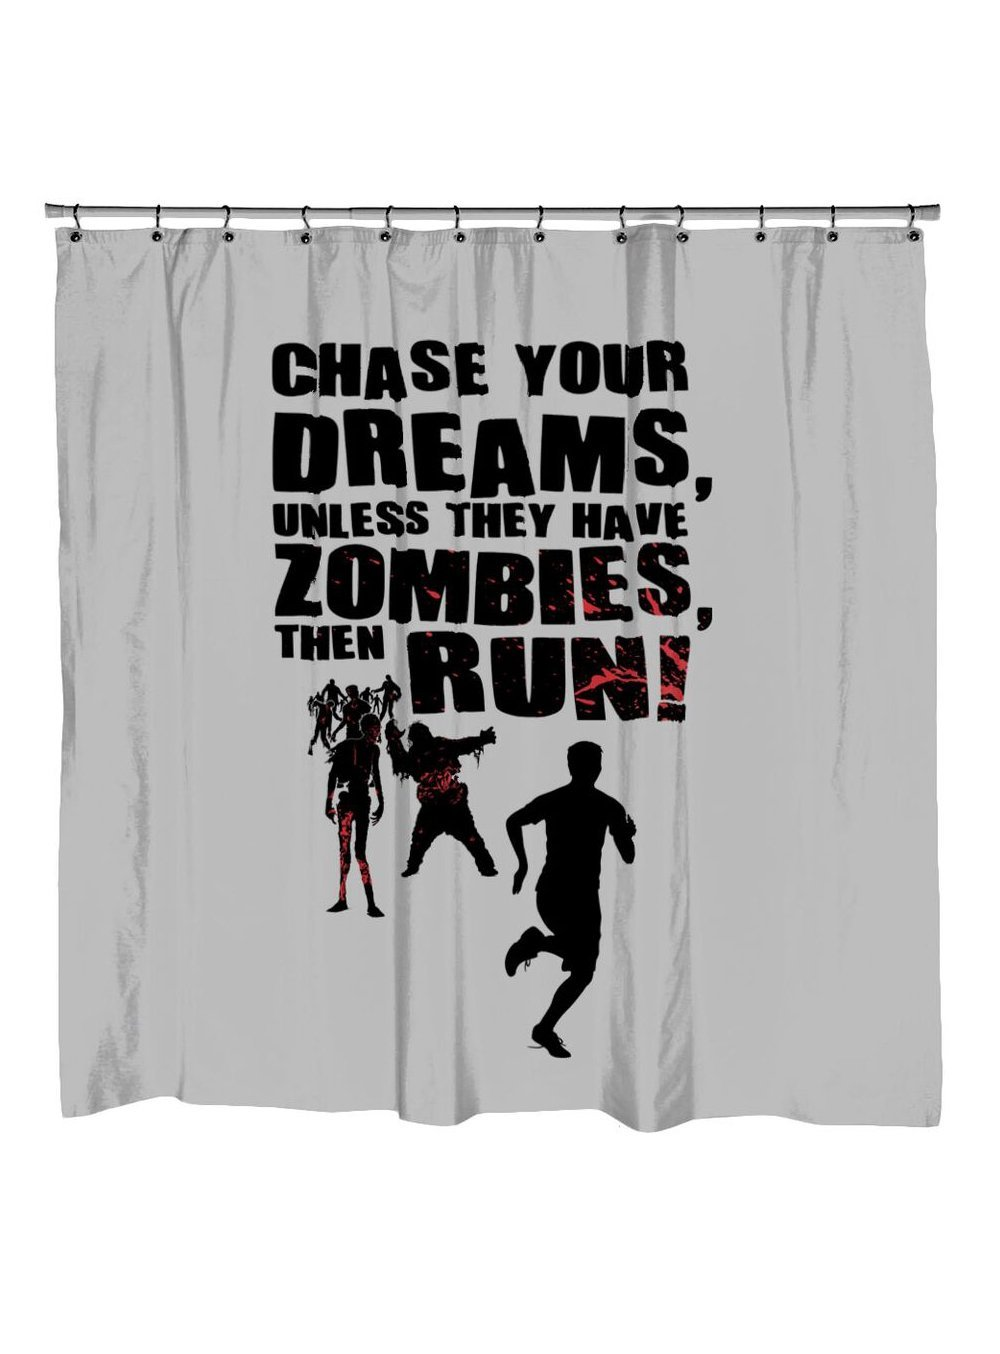 Scary shower curtain -  Chase Your Dreams Unless They Have Zombies Shower Curtain Chase_your_dreams_unless_they_have_zombies Chase_your_dreams_unless_they_have_zombies